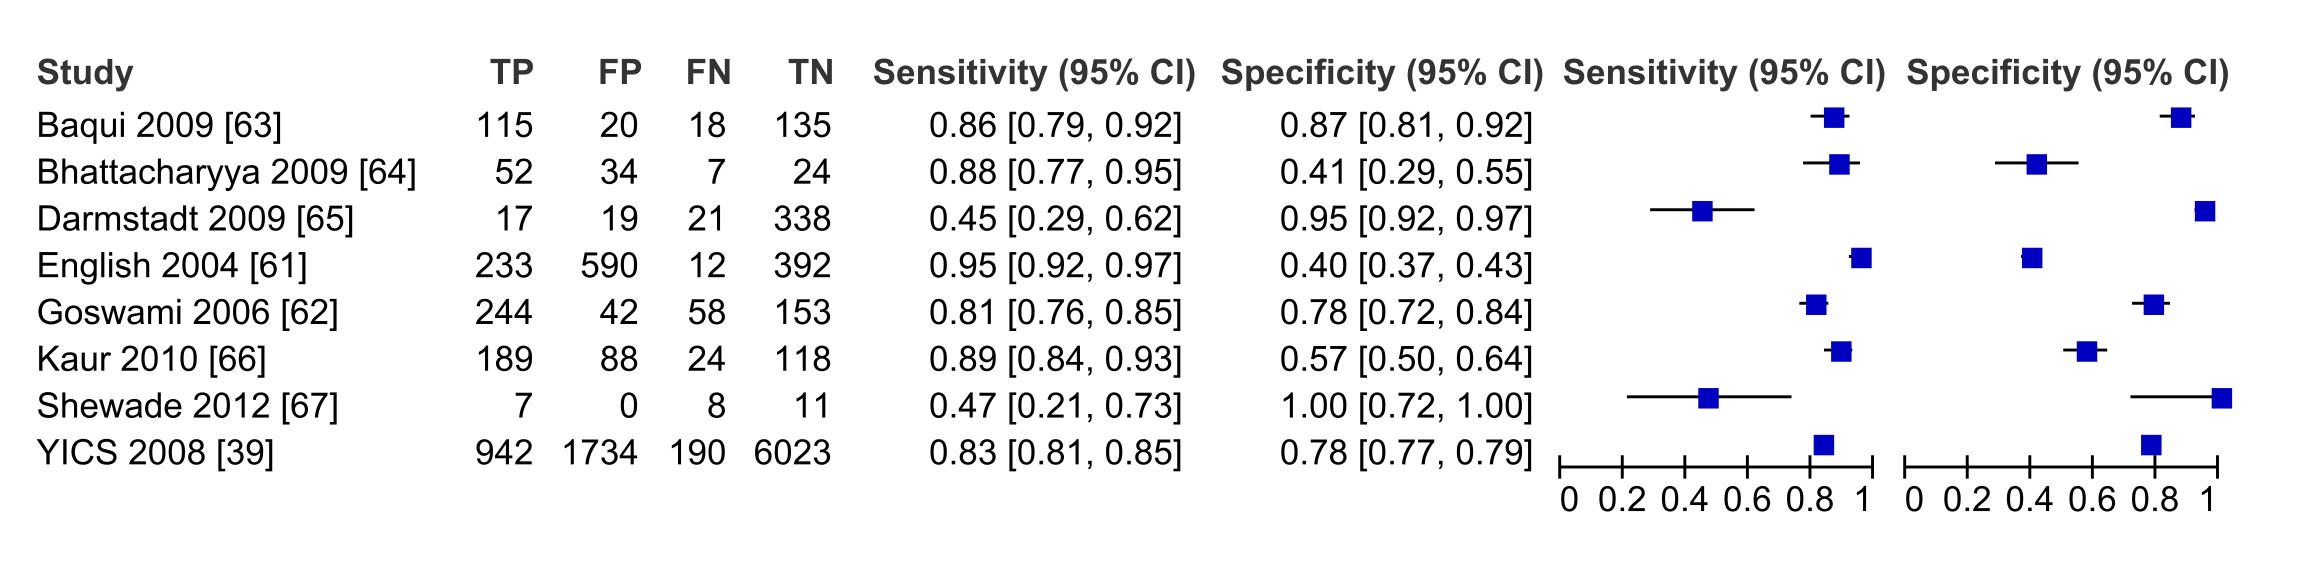 Forest plot of studies of diagnostic accuracy of frontline health worker diagnosis of pBI compared to physician diagnosis.